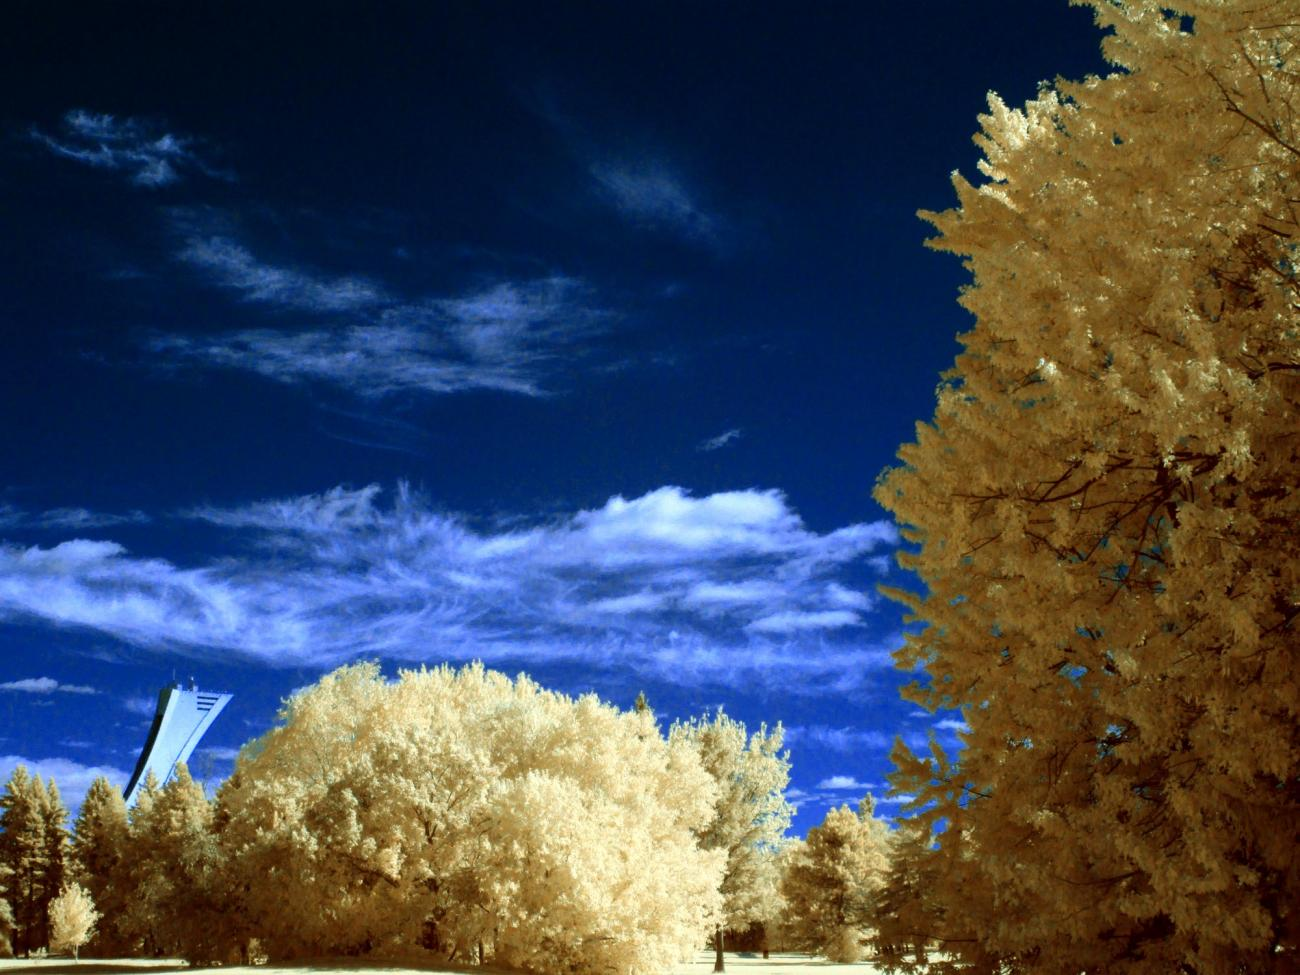 IR, an other try... by Luc2